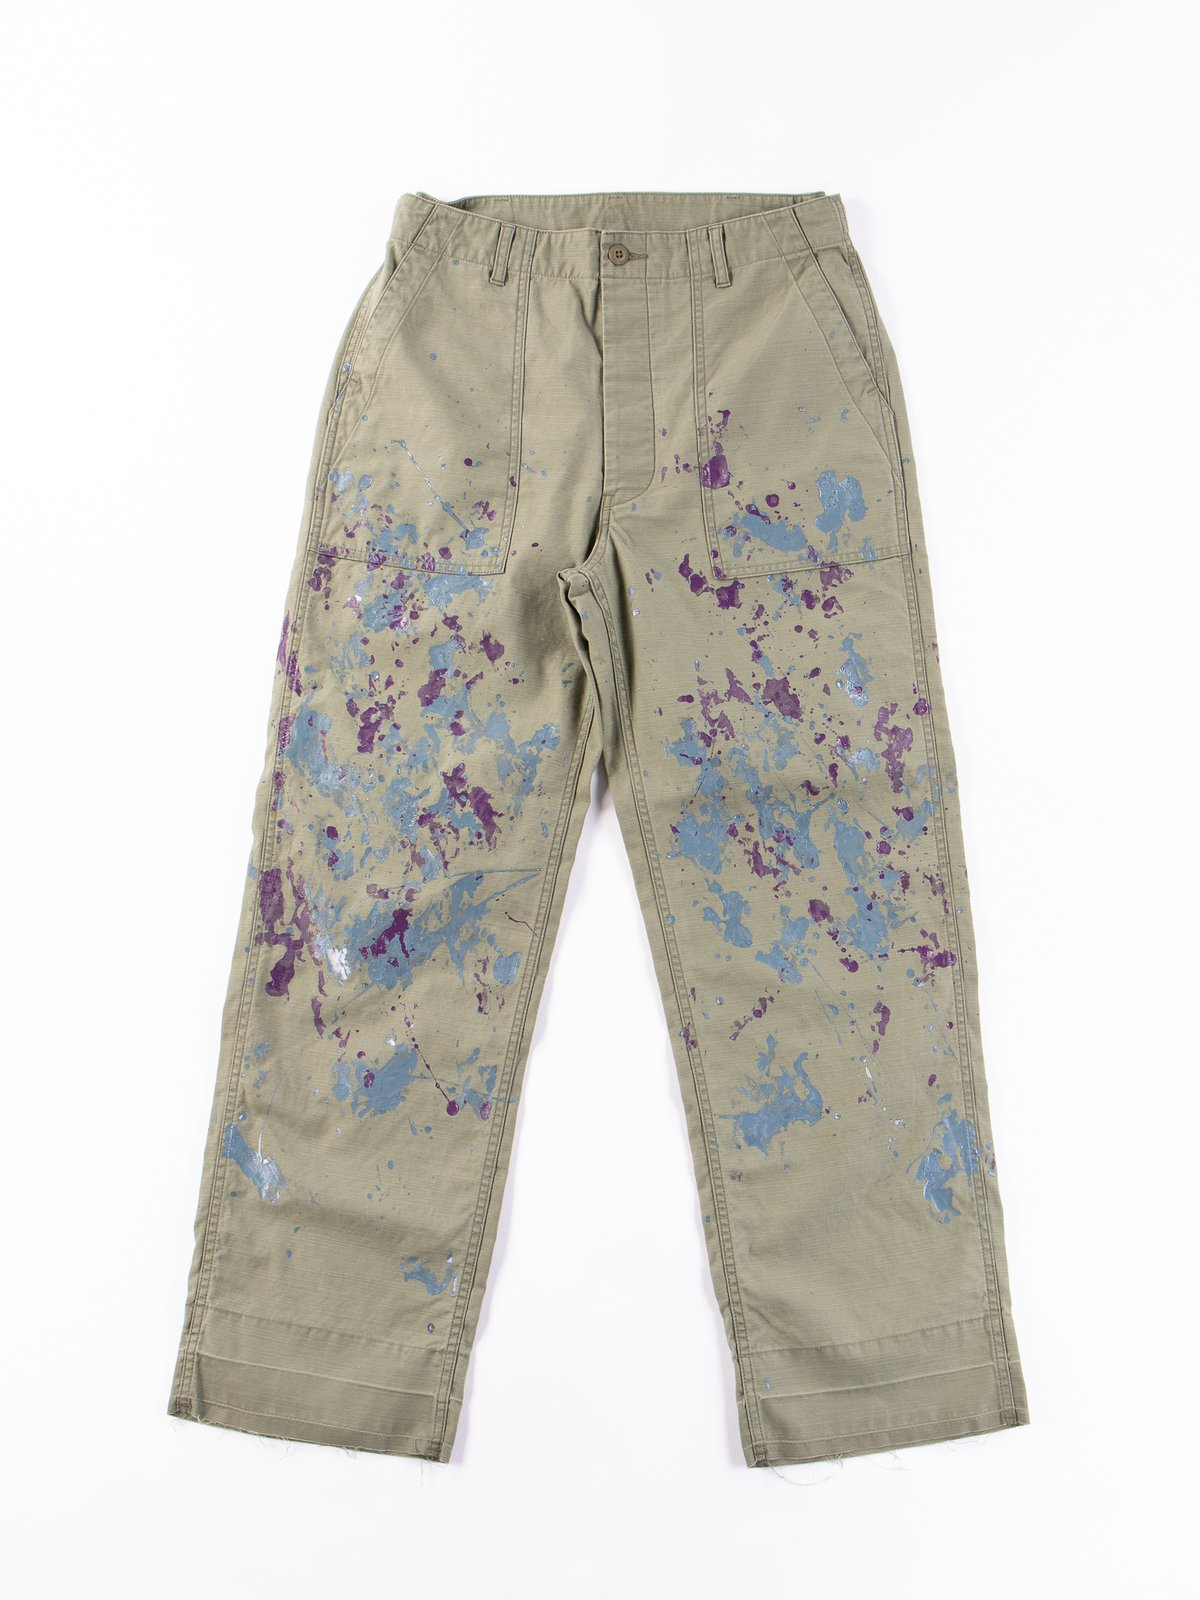 Olive Paint Sateen Fatigue Pant - Image 1